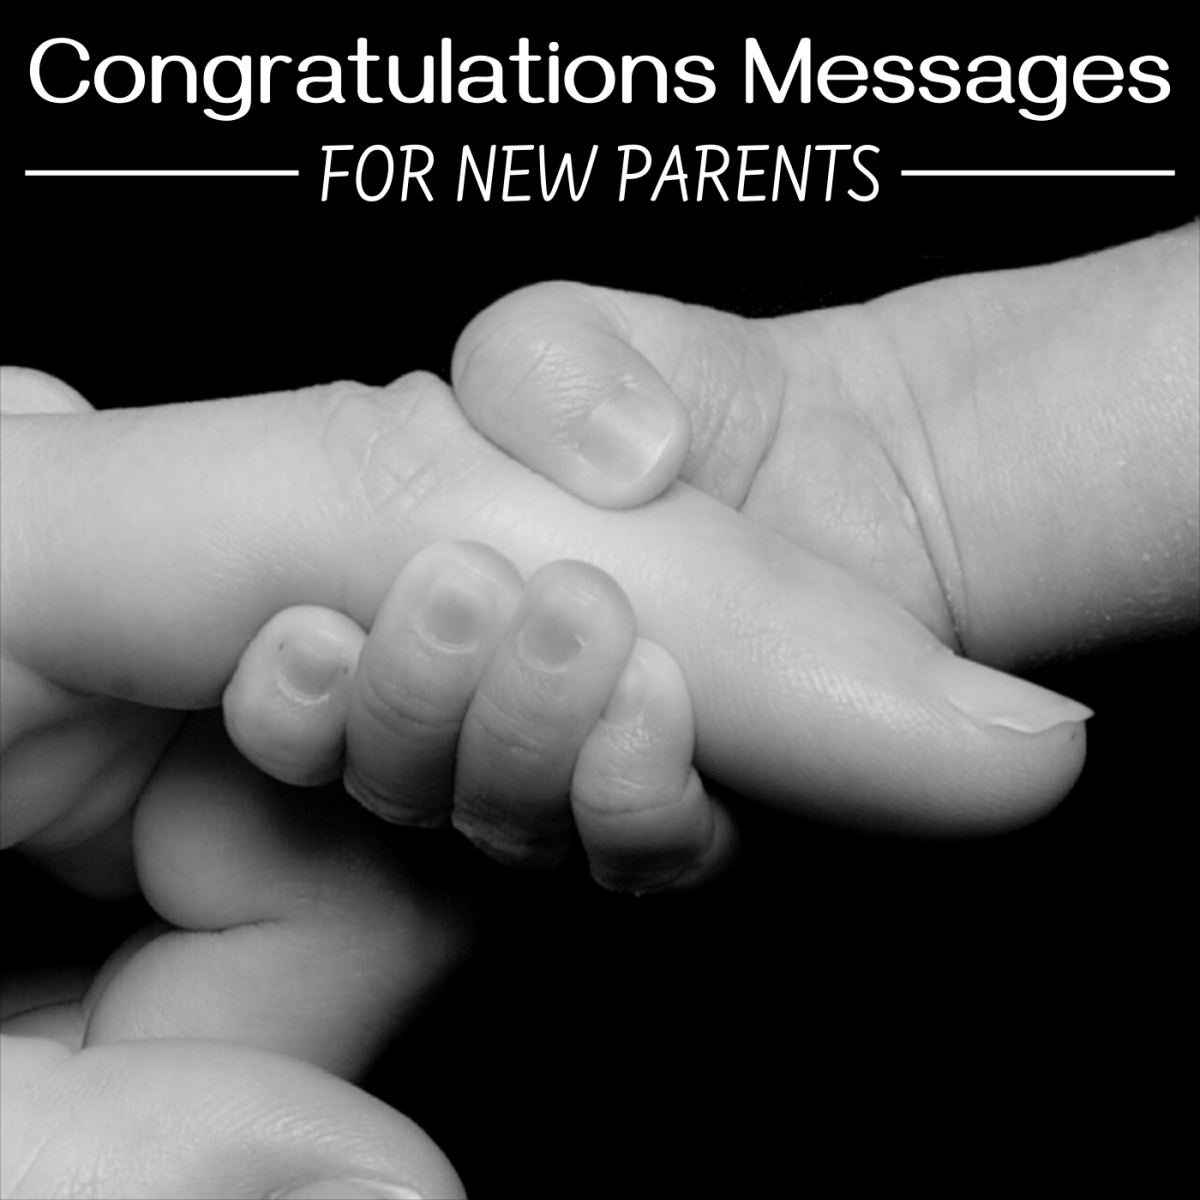 When a friend has a child, congratulations are in order! Use the examples in this article to craft a thoughtful note or card for the new parents.